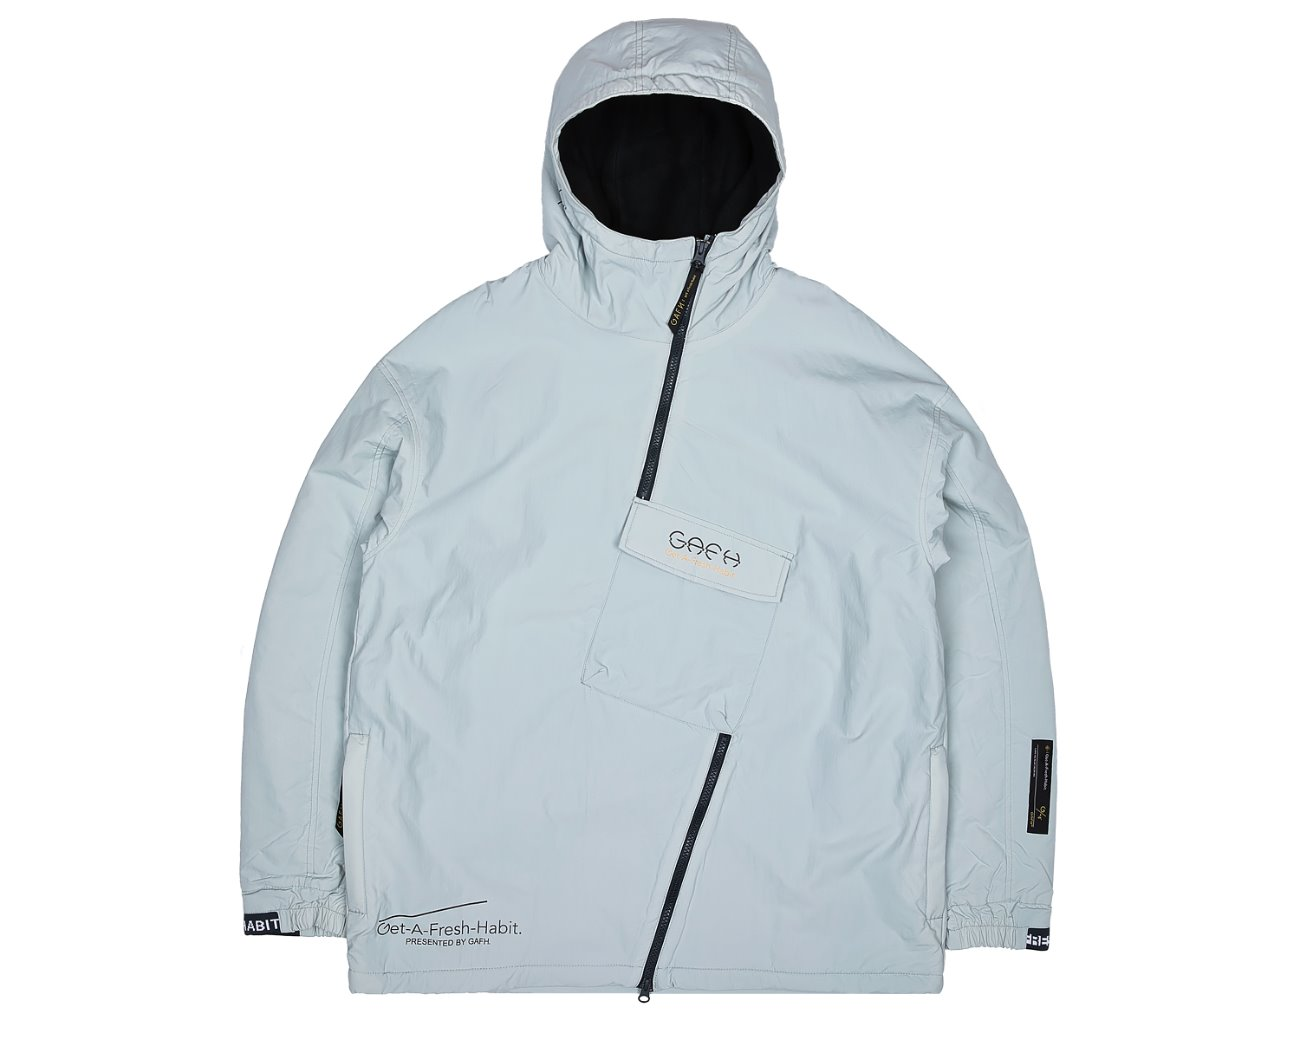 SIDE ZIP UP PULLOVER WHITEGRAY / GAFH